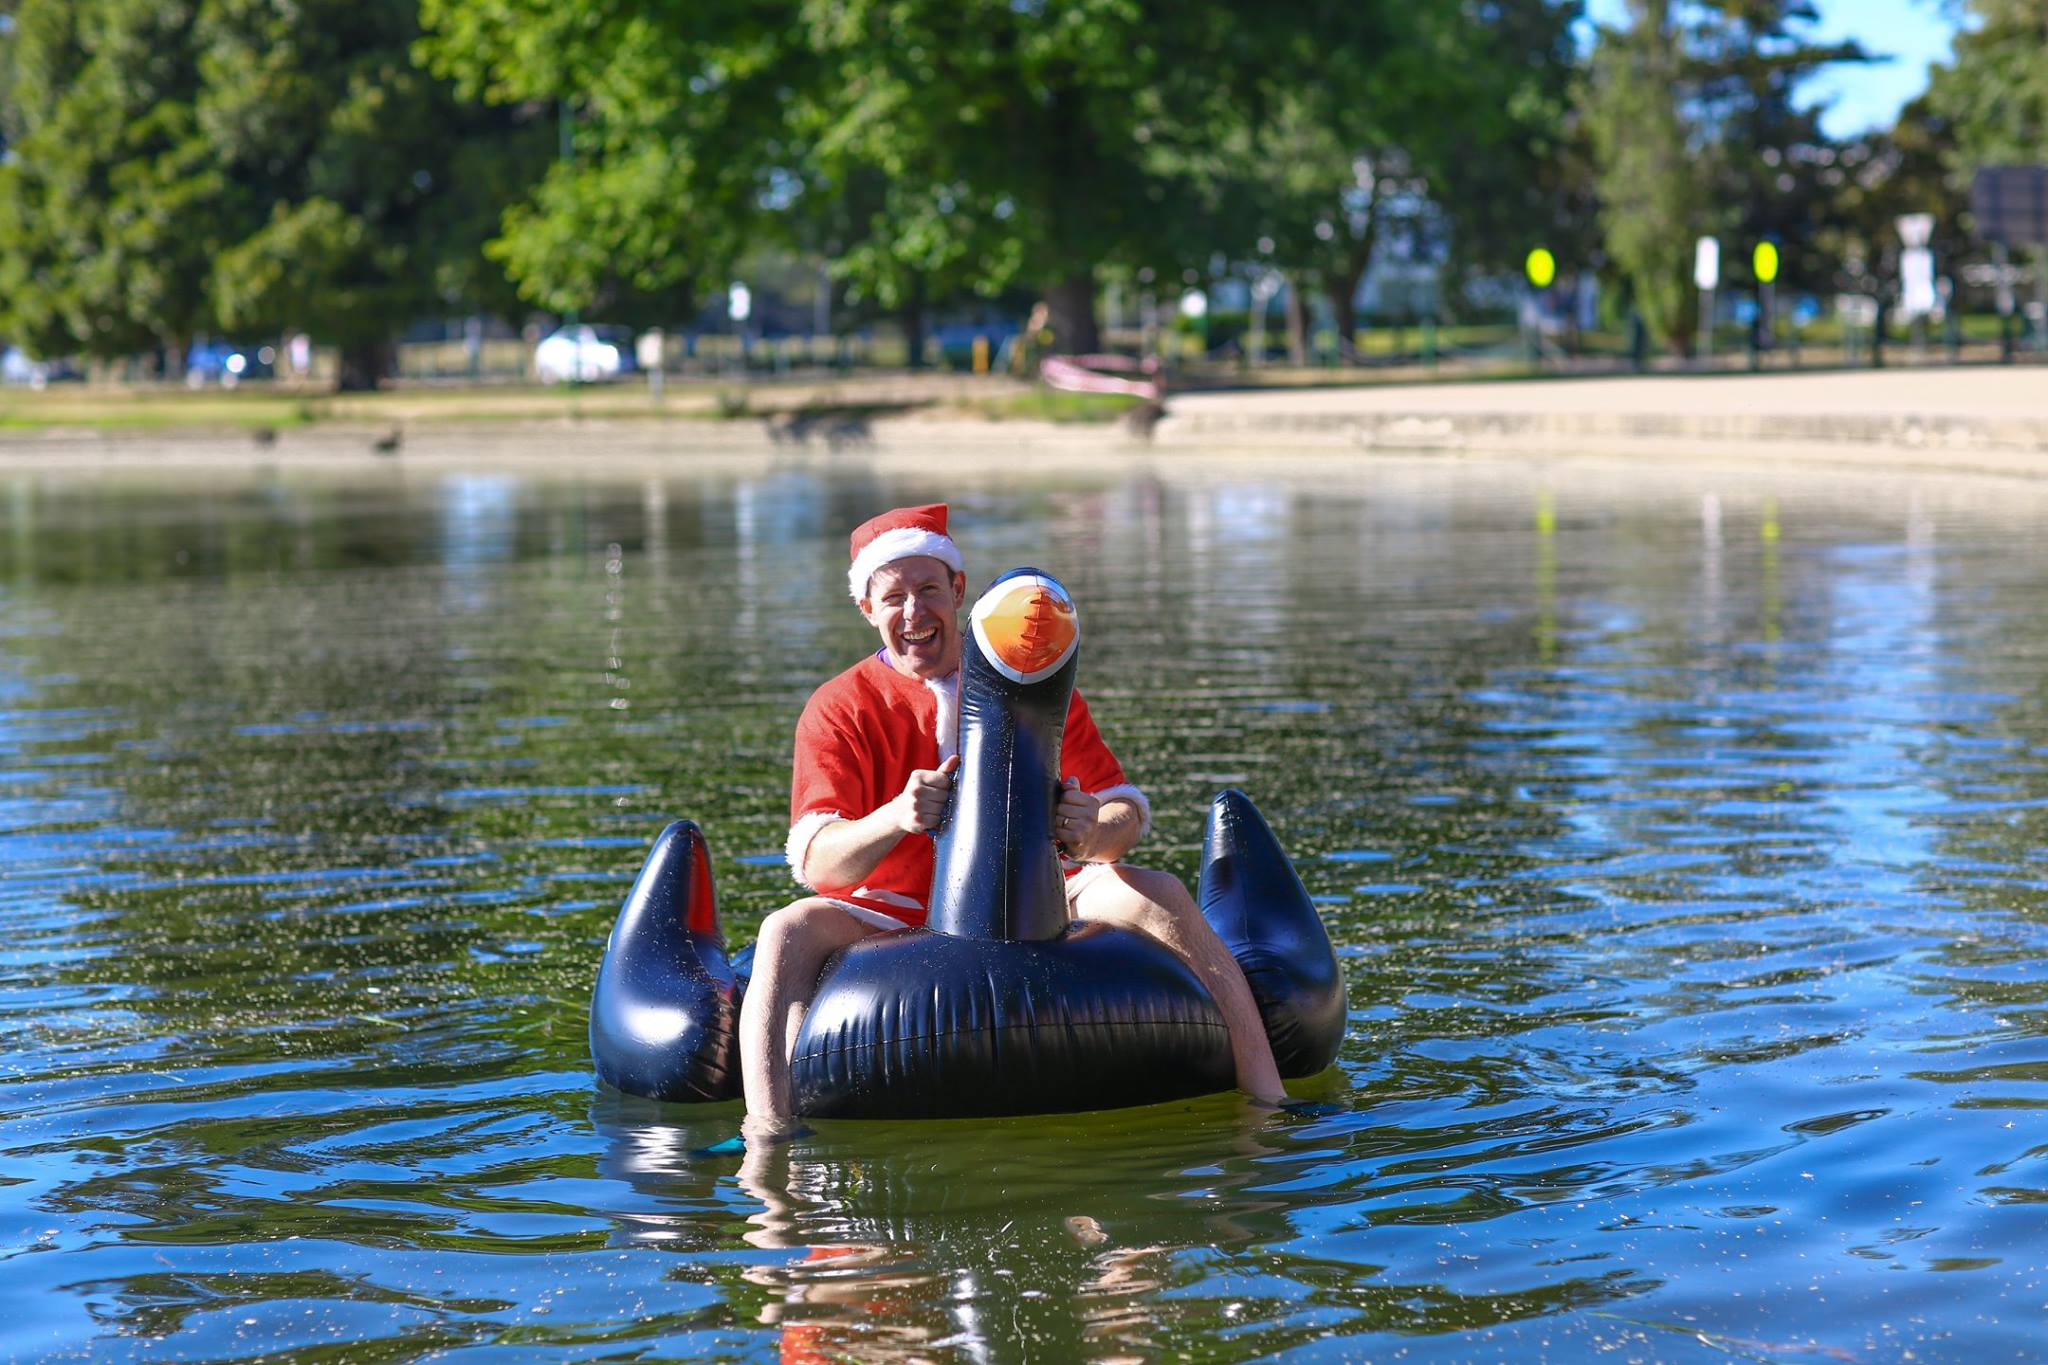 Even Santa finds his way to parkrun